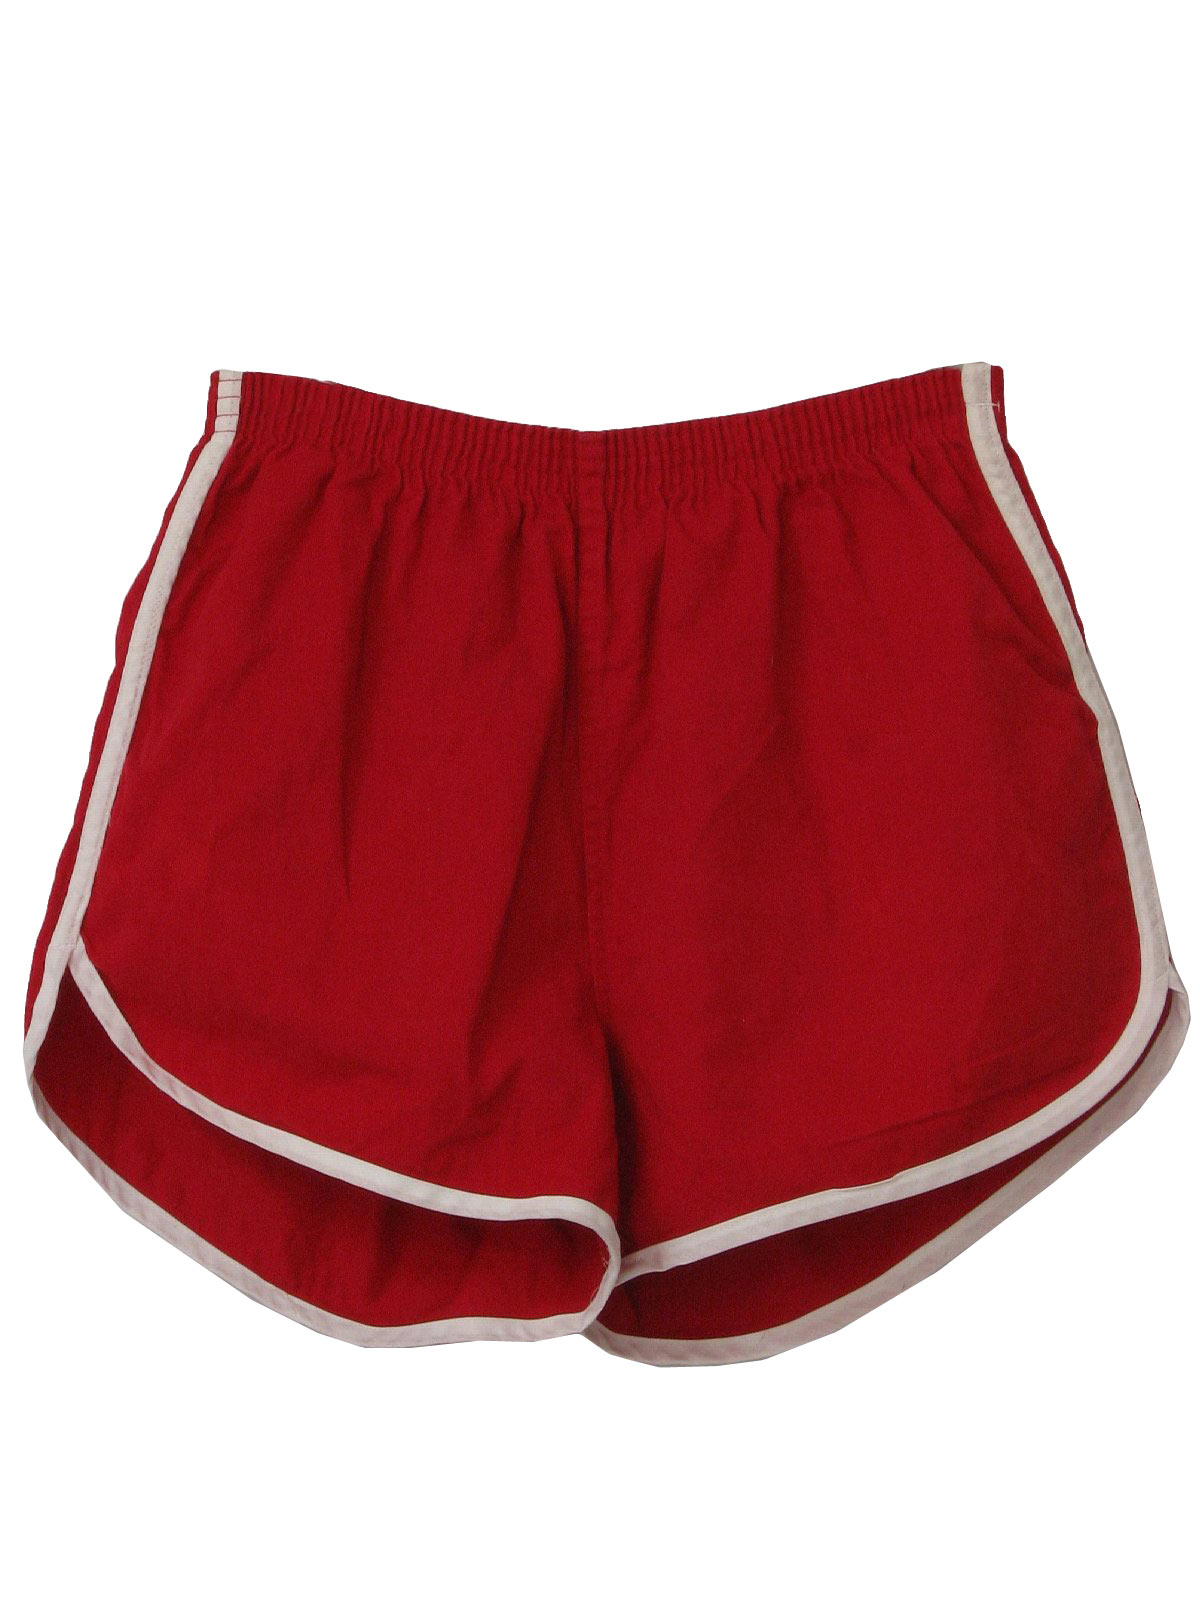 d6cccd9fd0 Retro 80's Shorts: 80s -Abco- Mens red and white side seam stripe ...